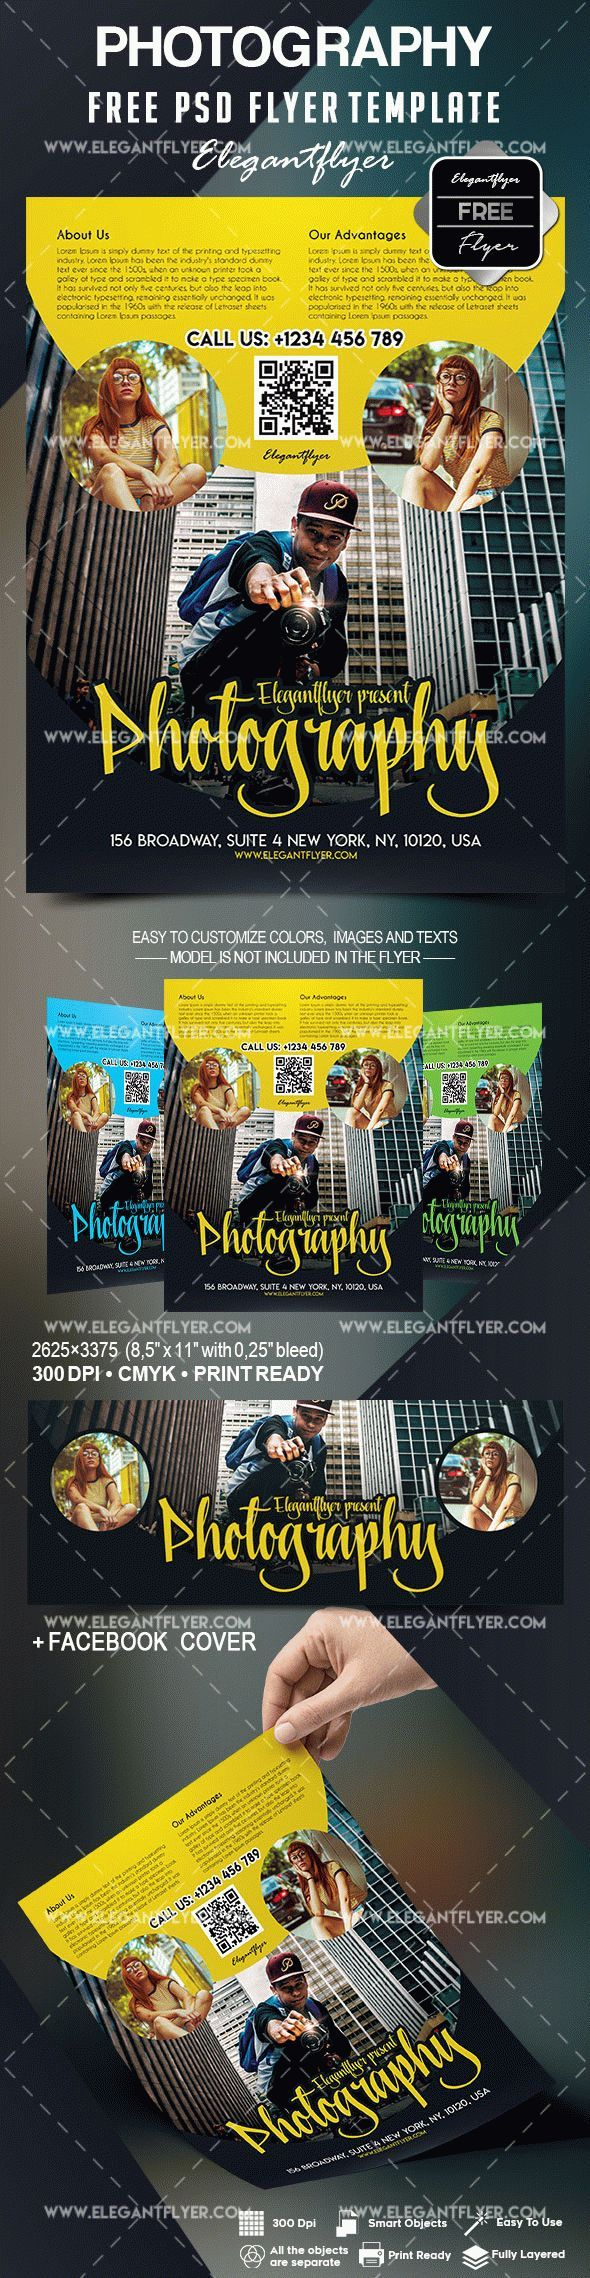 Free Photography Flyer Template Flayers Pinterest Photography